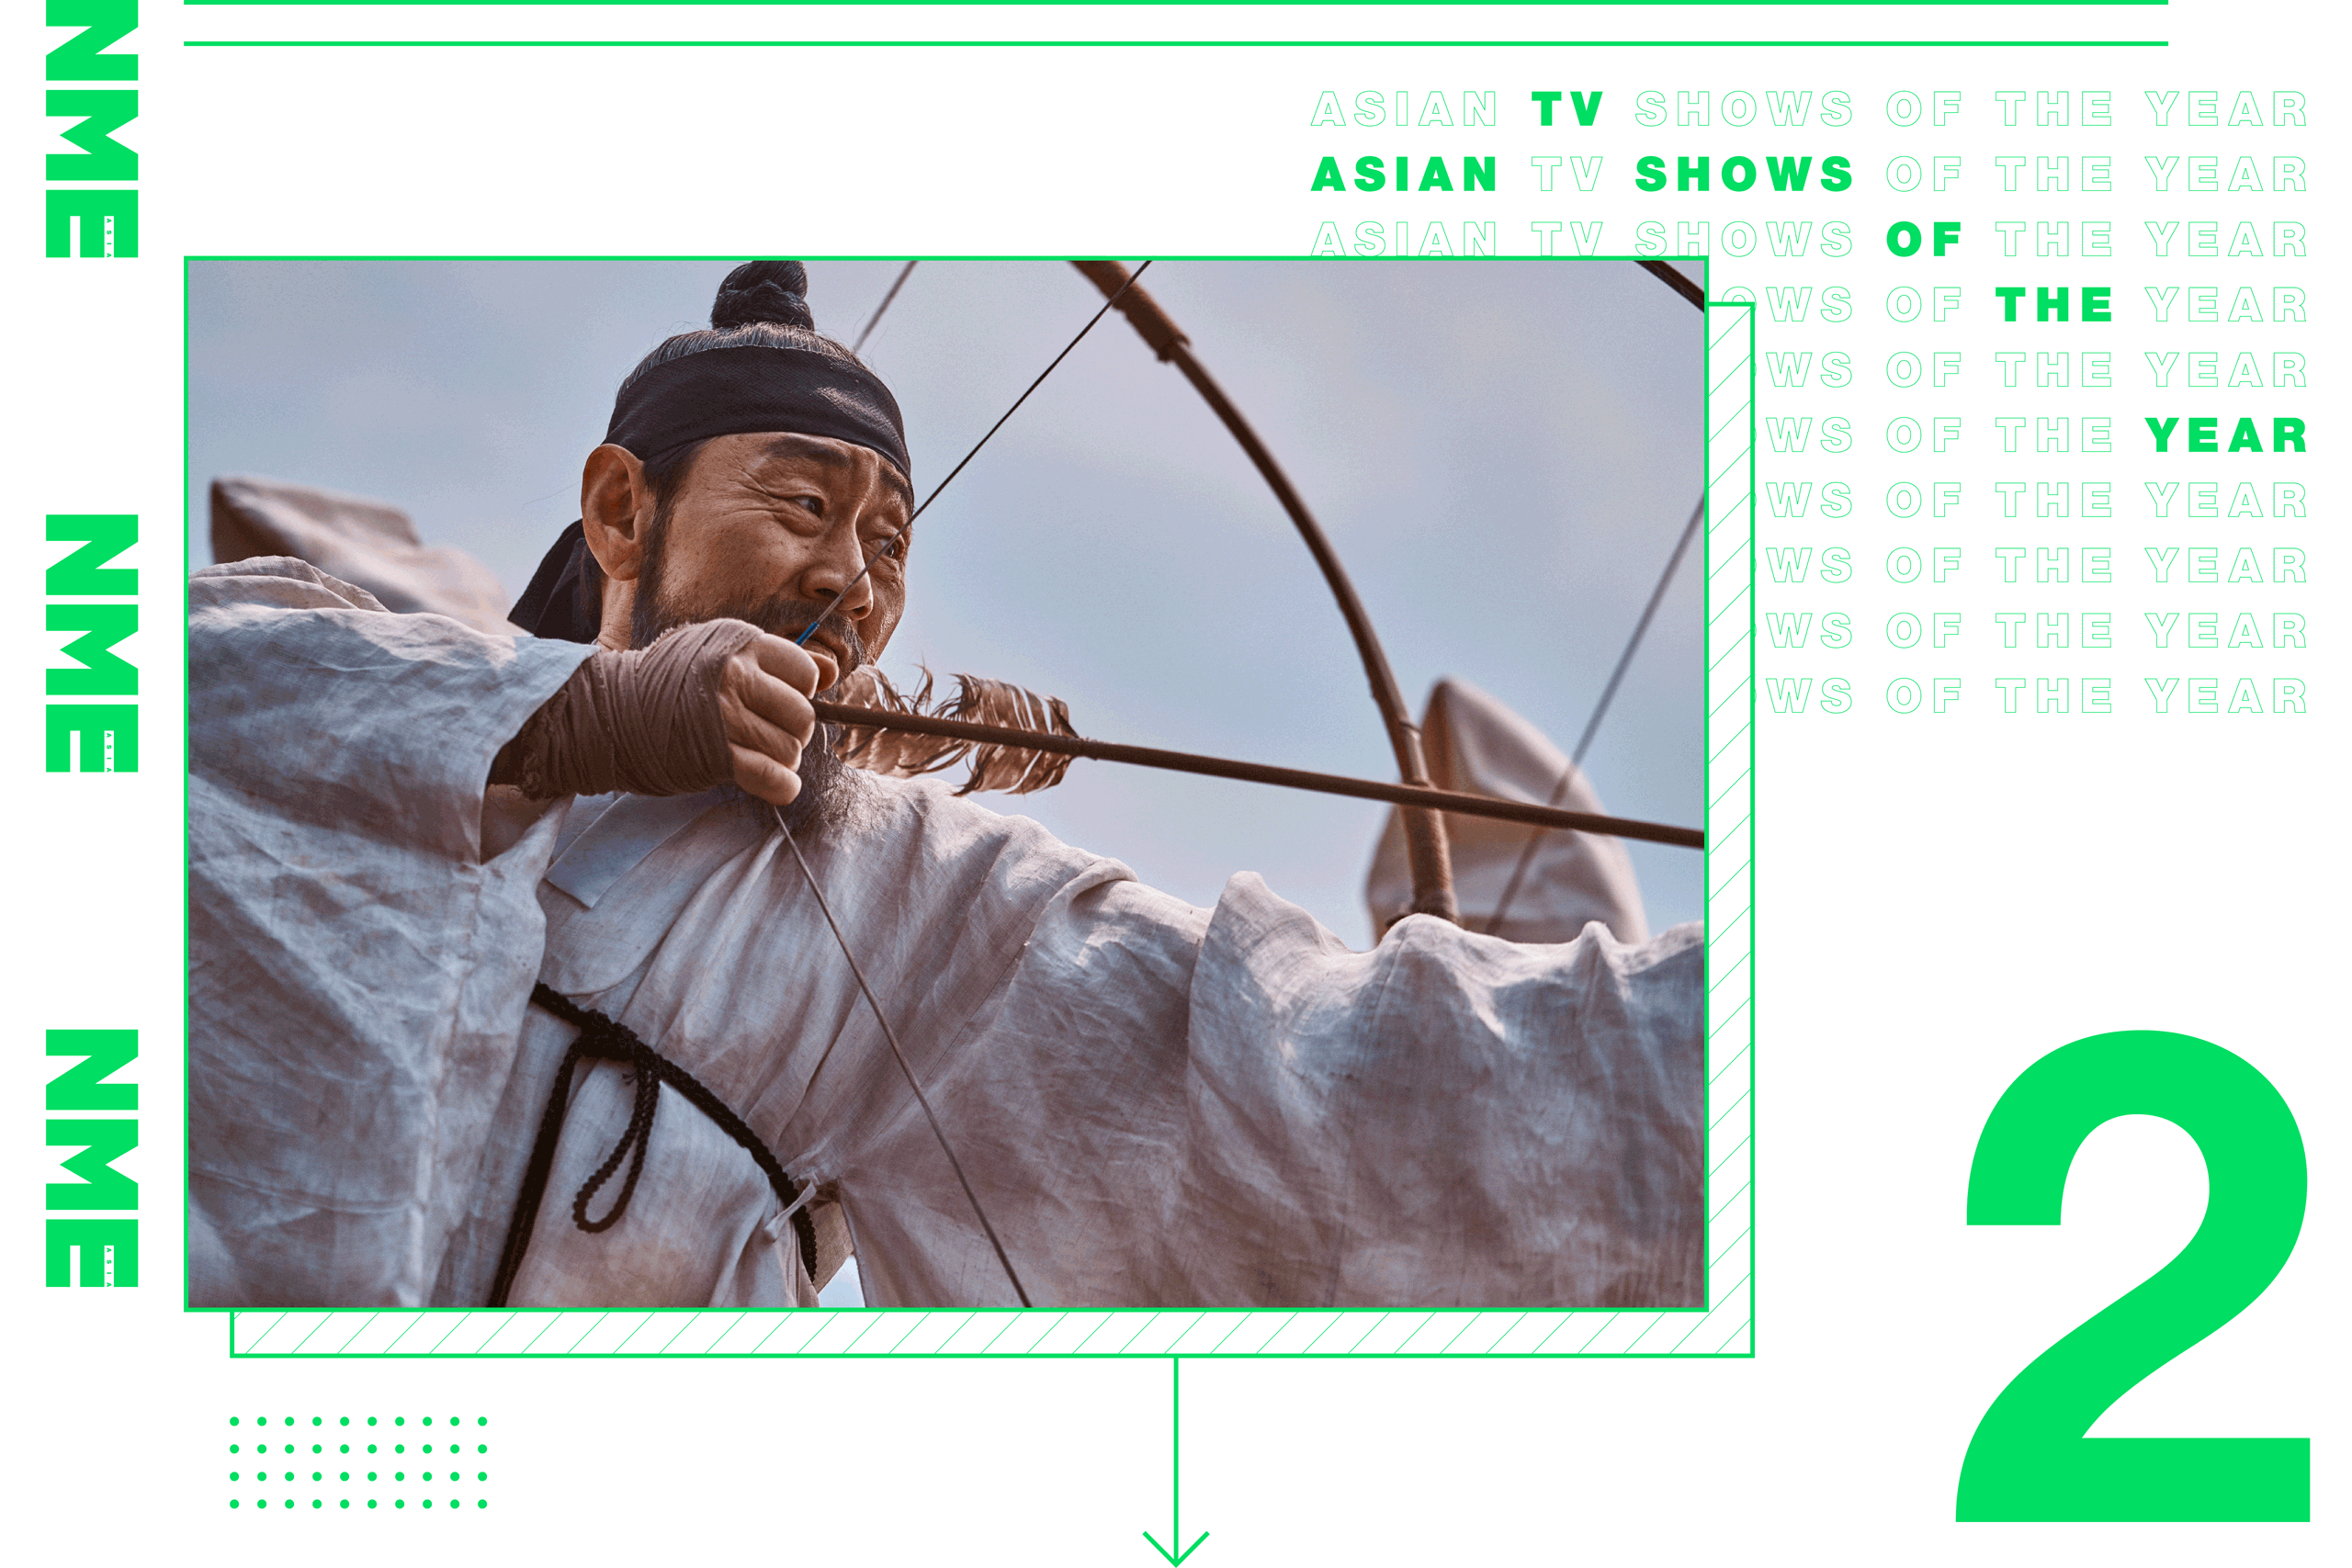 NME Asian TV Shows Of The Year Kingdom